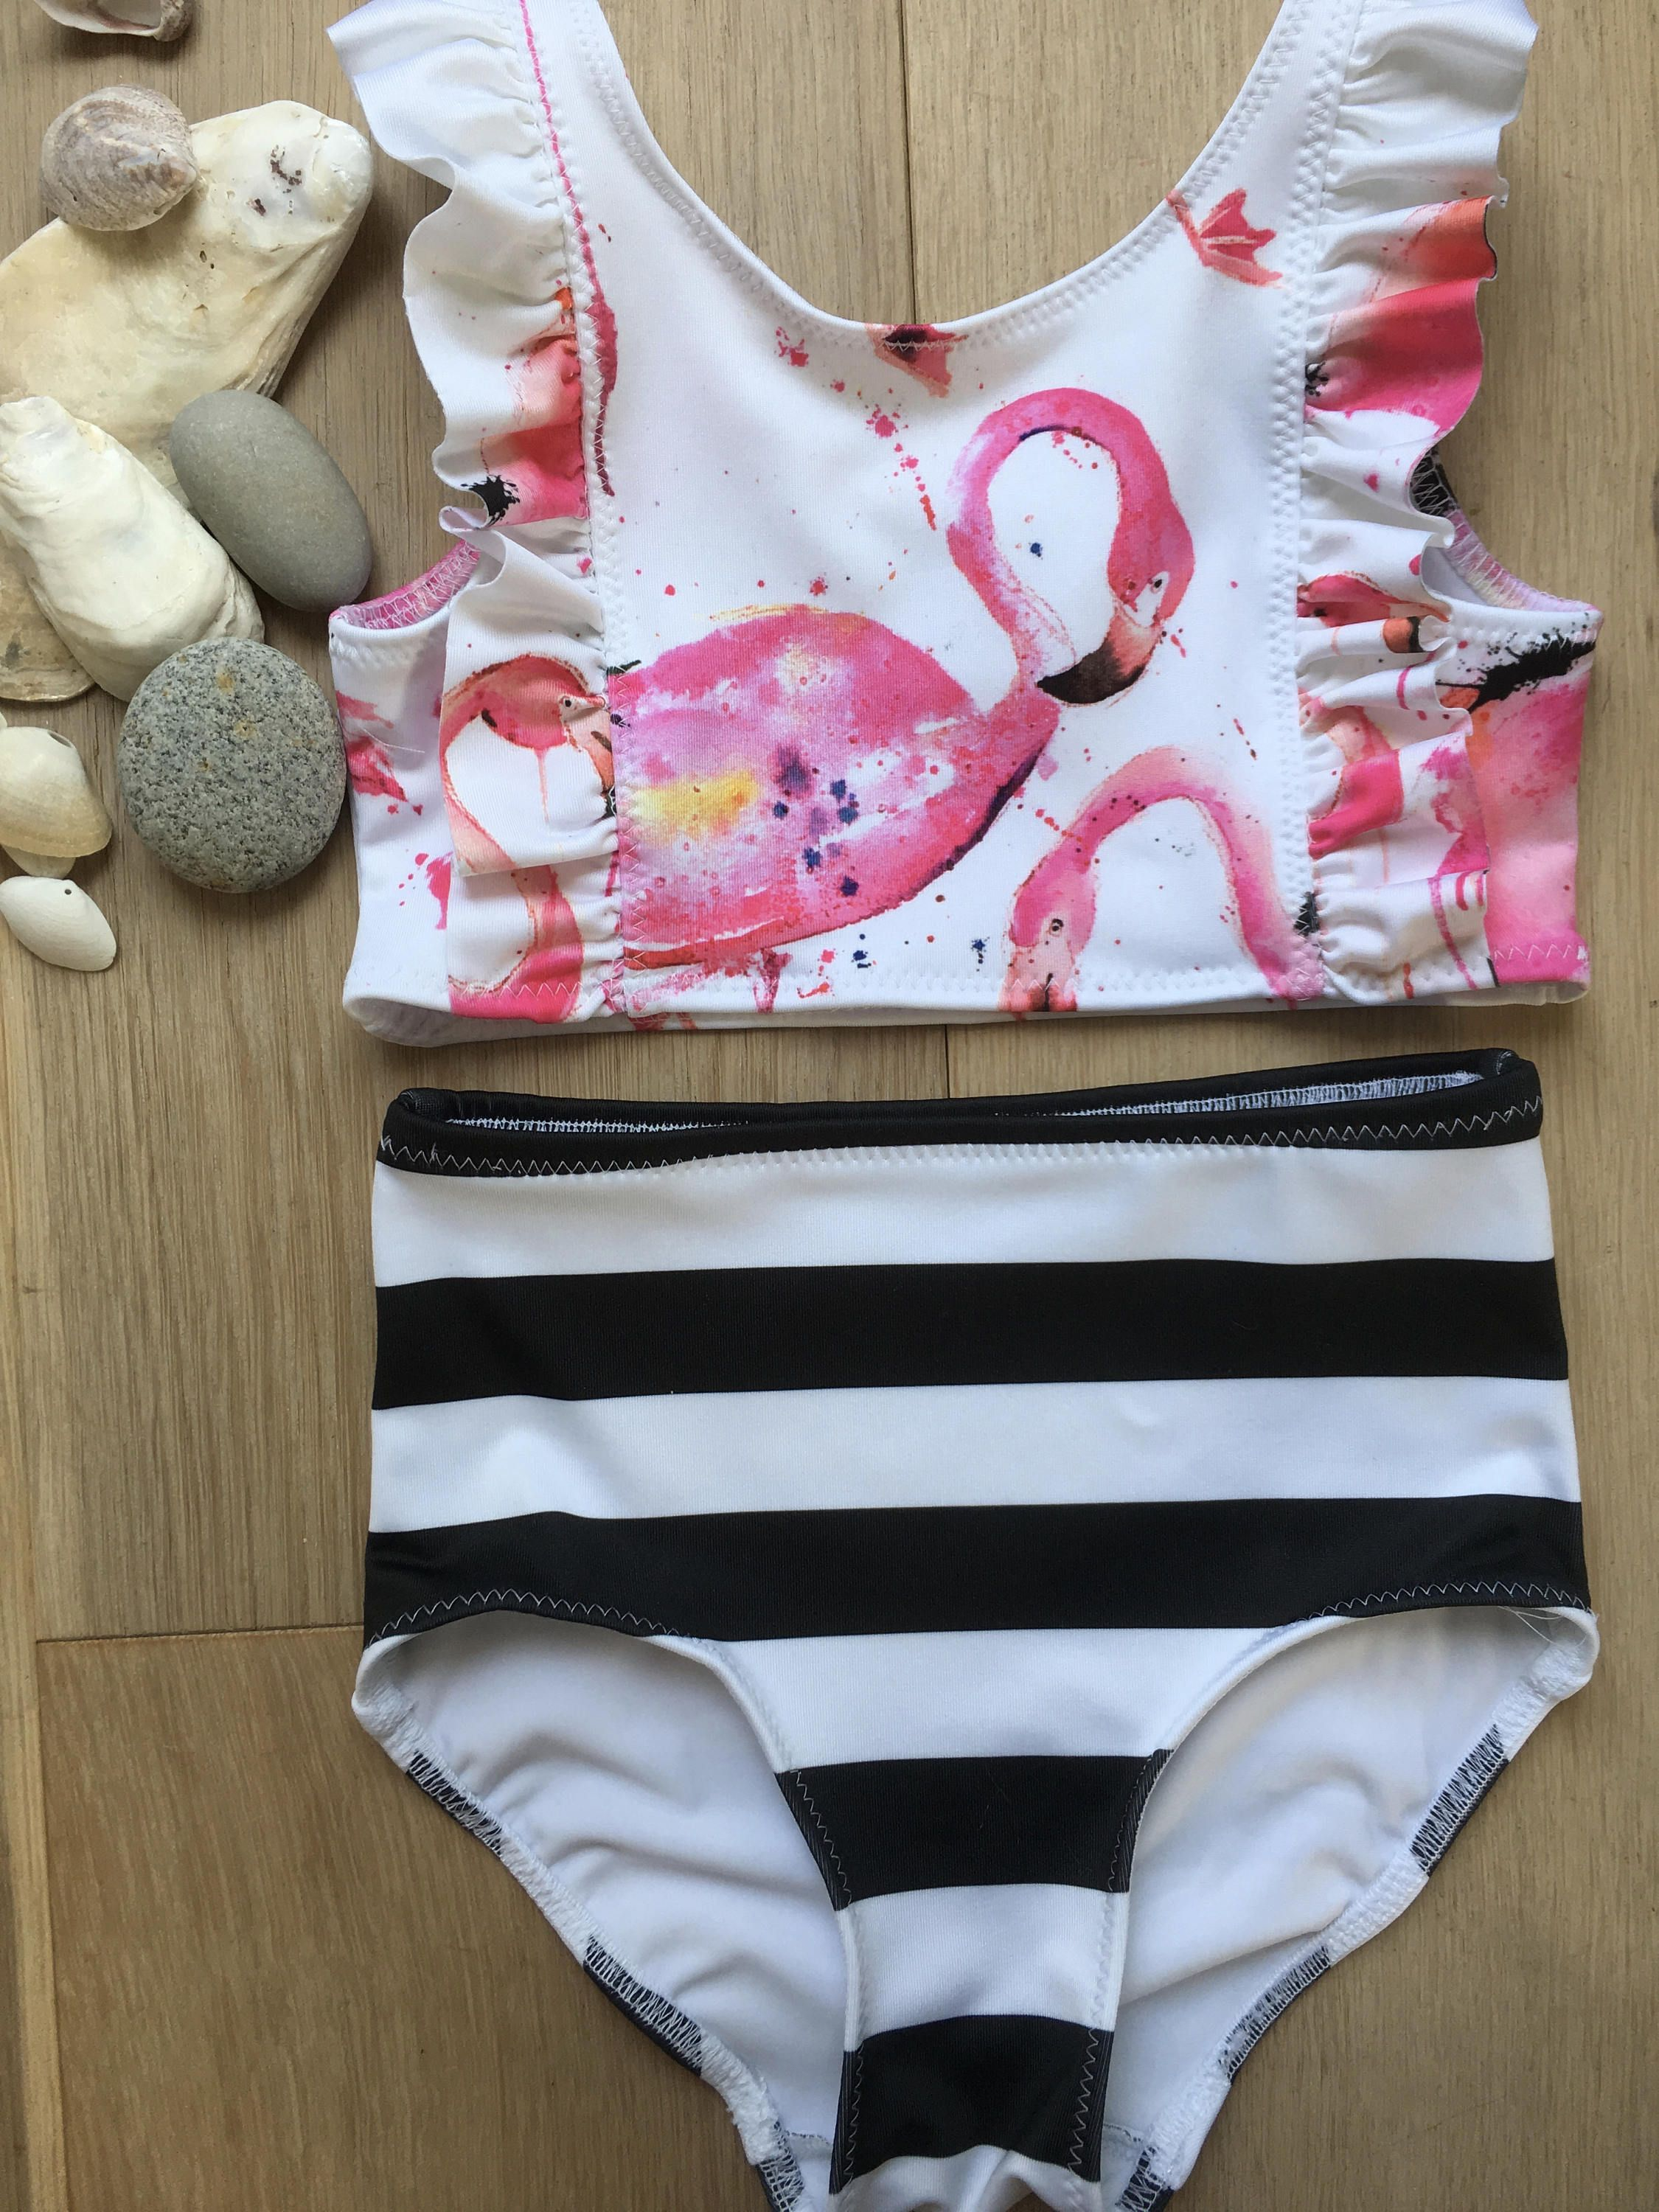 7bf1bbdc6edf4 Girls Peplum Swimsuit   Girls Swimwear   Toddler Girls Swimsuit   Two Piece  Swimsuit  Pink Flamingo and stripe Peplum two piece by GONE2QUONNIE on Etsy